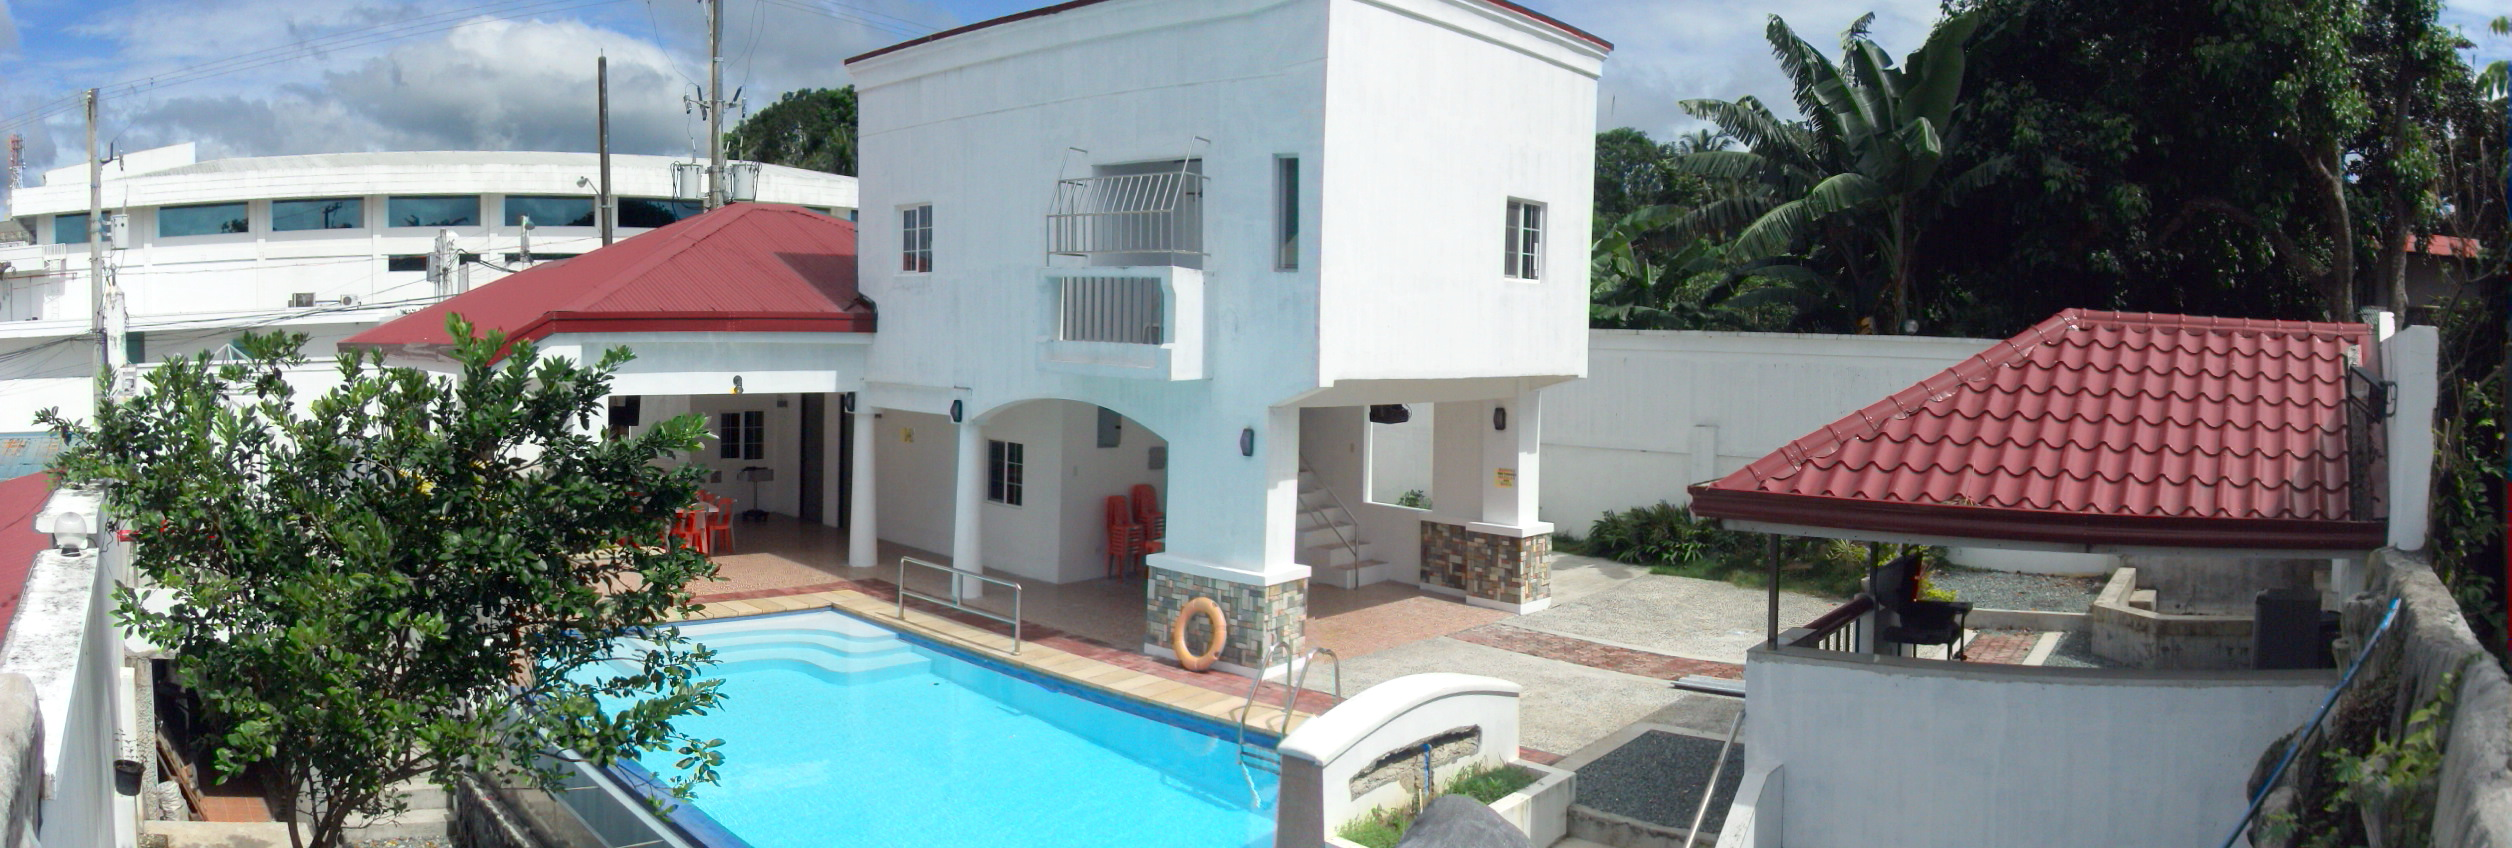 Joseph's Private Resort in Antipolo